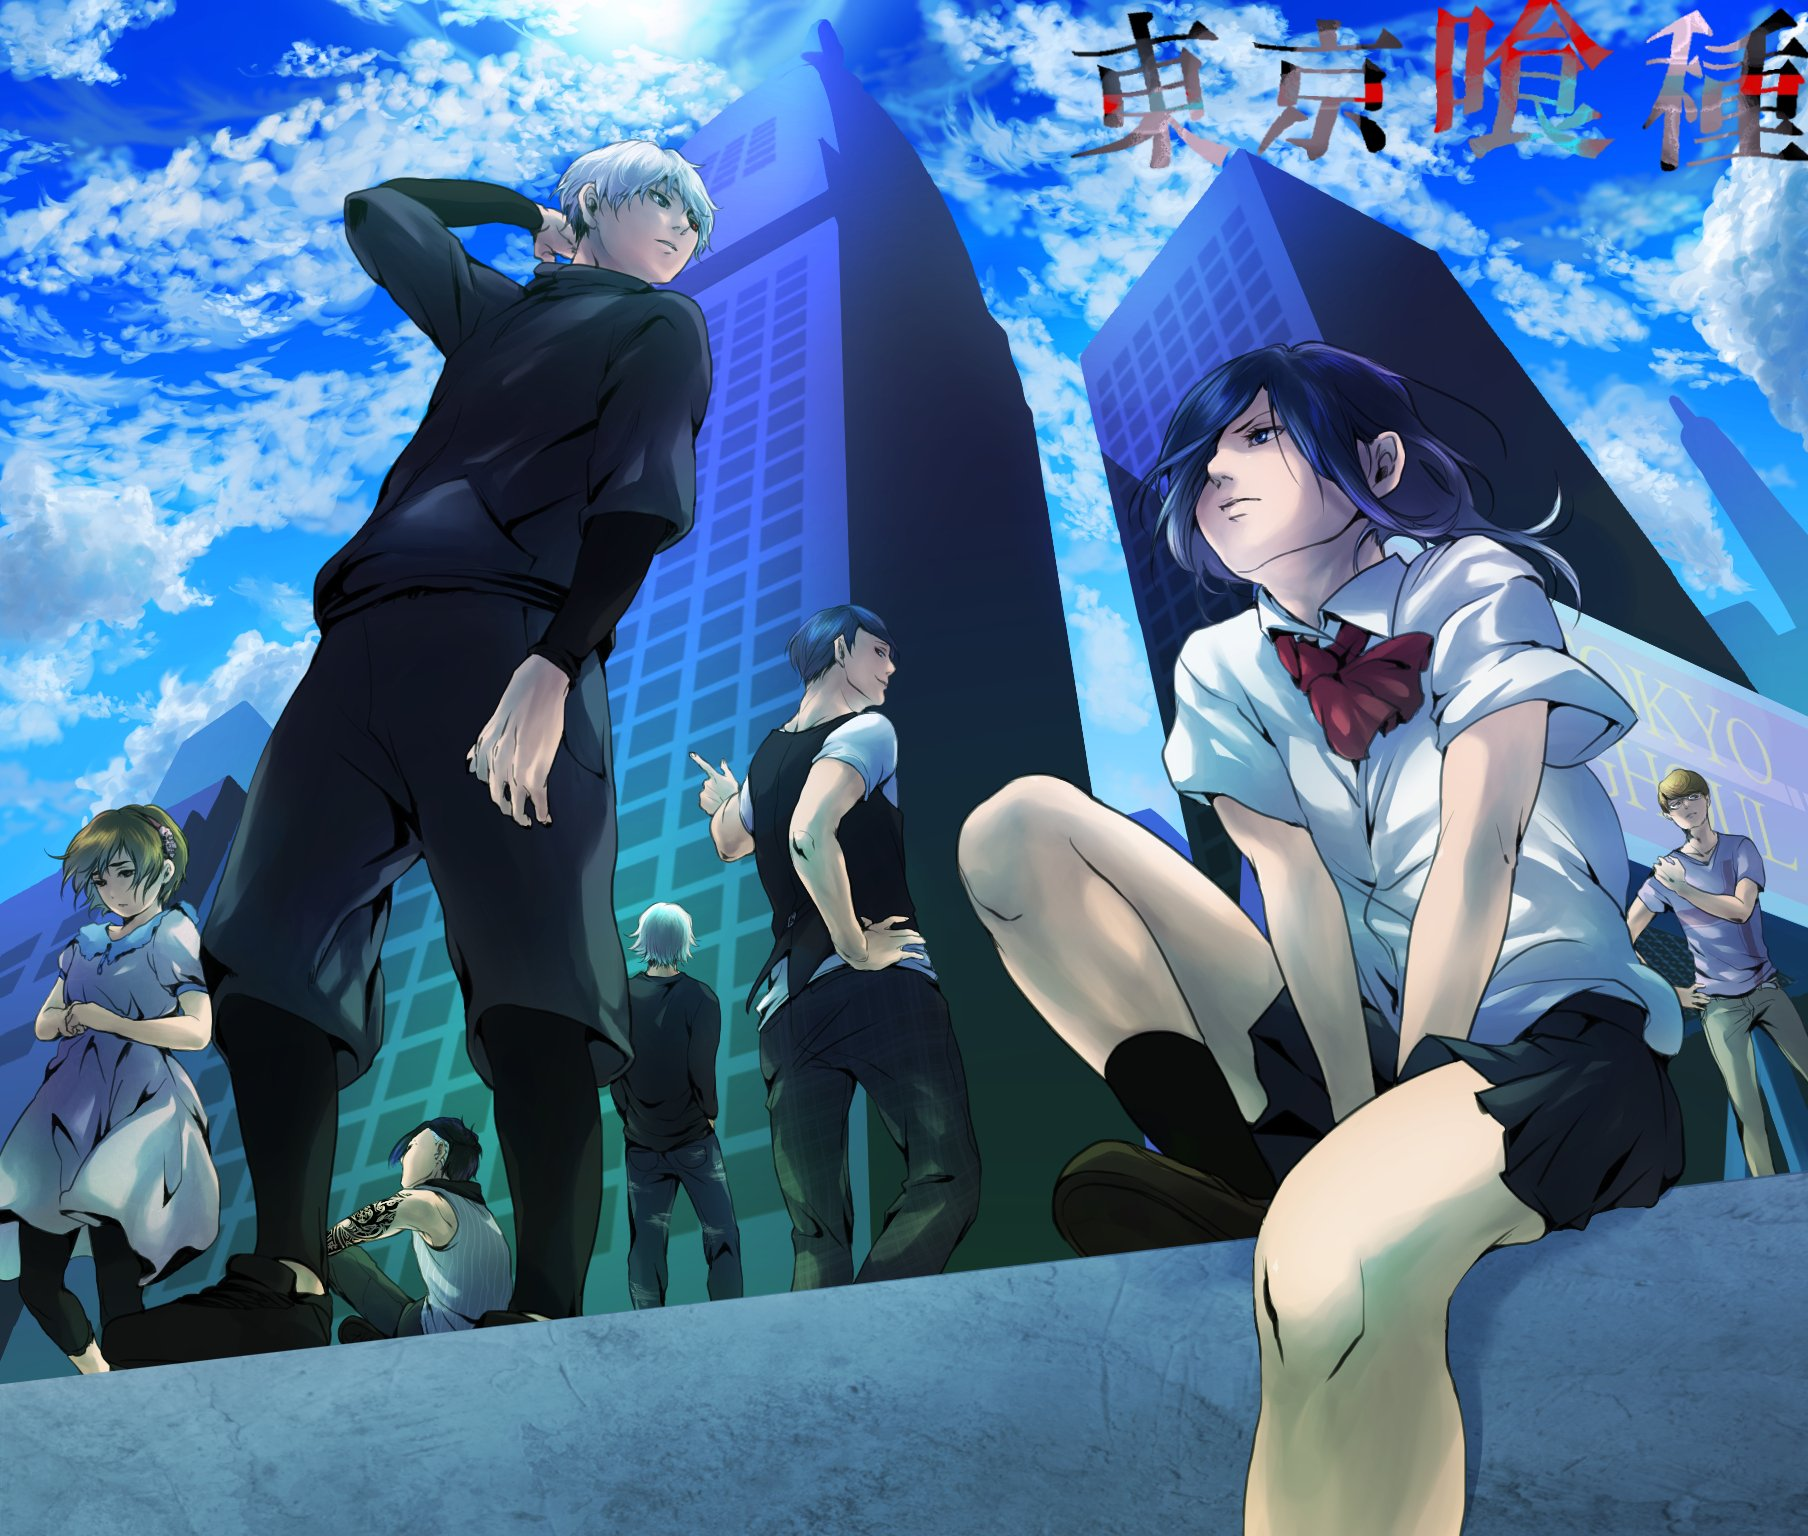 Tokyo Ghoul Anime Series Characters Clouds Blue Sky Girls